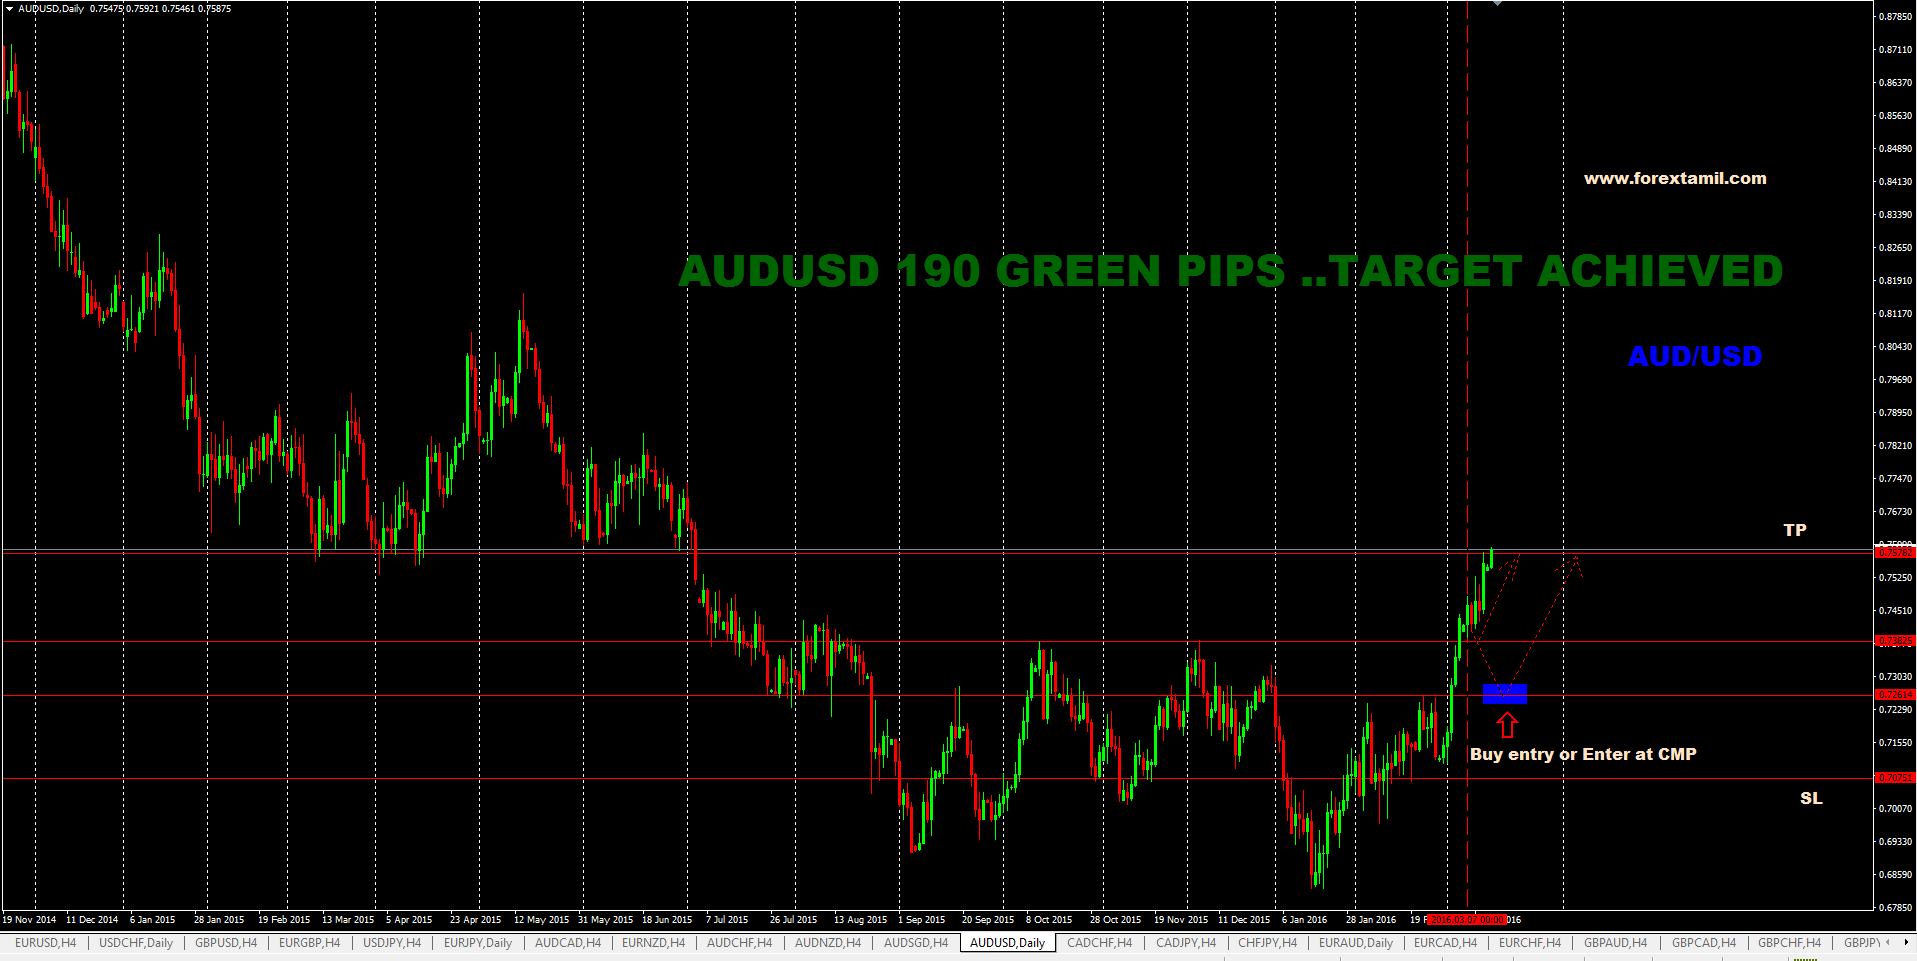 SURE SHOT SIGNAL RESULT : AUD/USD 190 GREEN PIPS…TARGET ACHIEVED